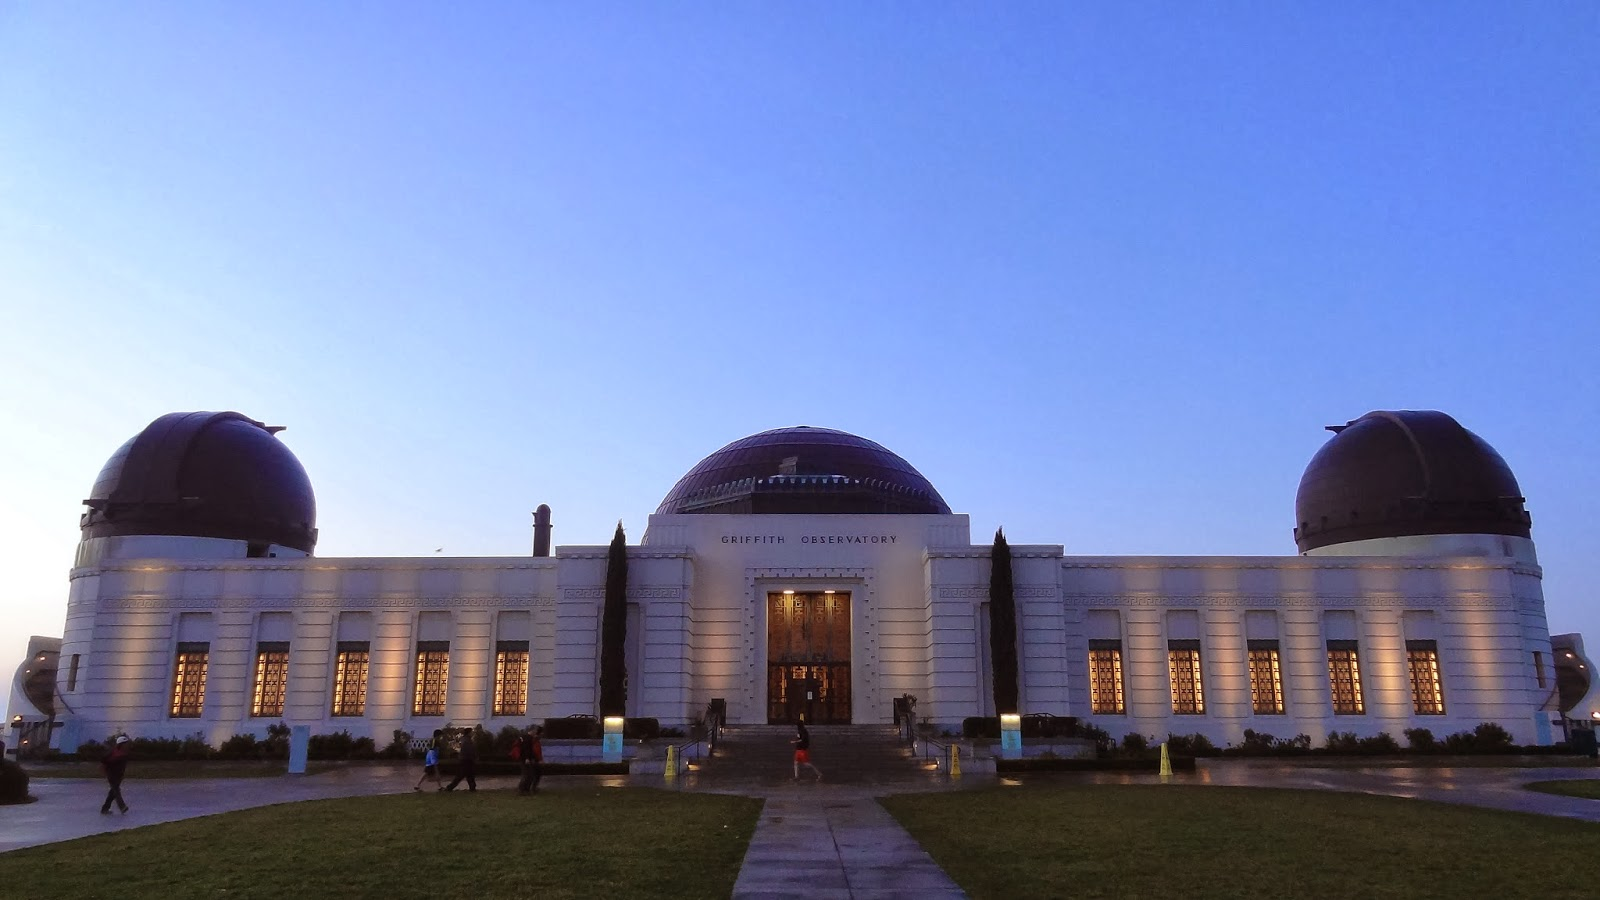 Griffith Observatory (Los Angeles)